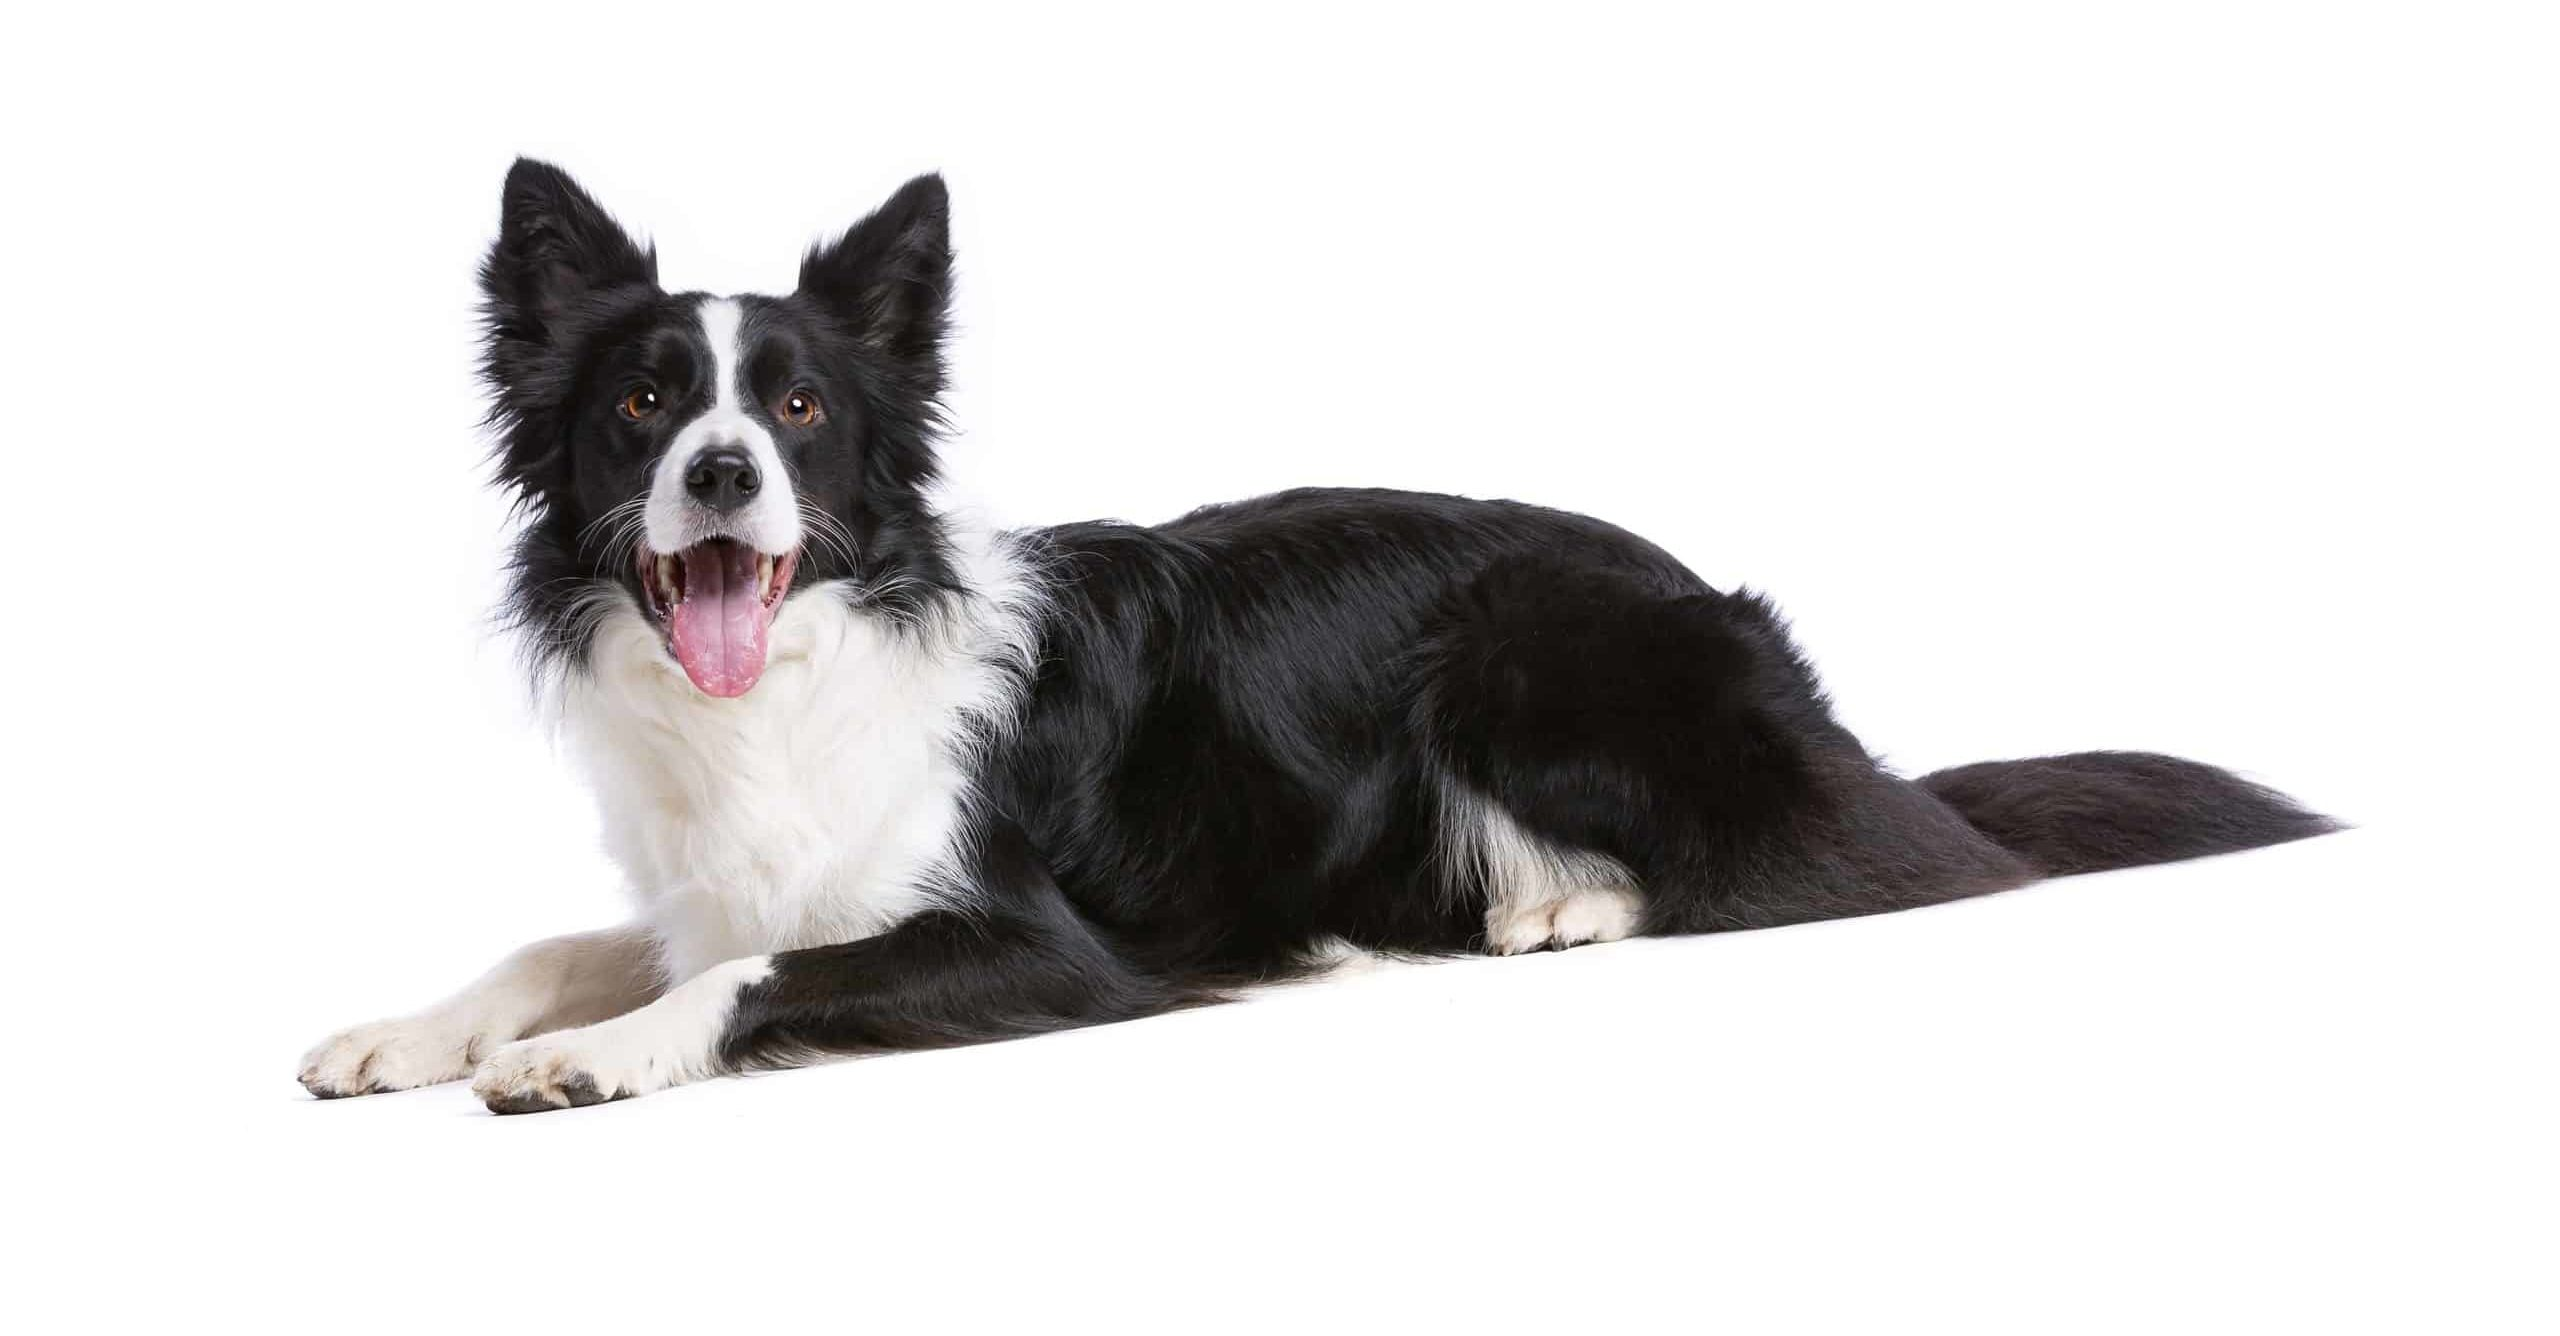 Border collie on white background. Border collies need more than a walk around the block. Multiple trips to the park and on-leash runs will tire out a non-working border collie.